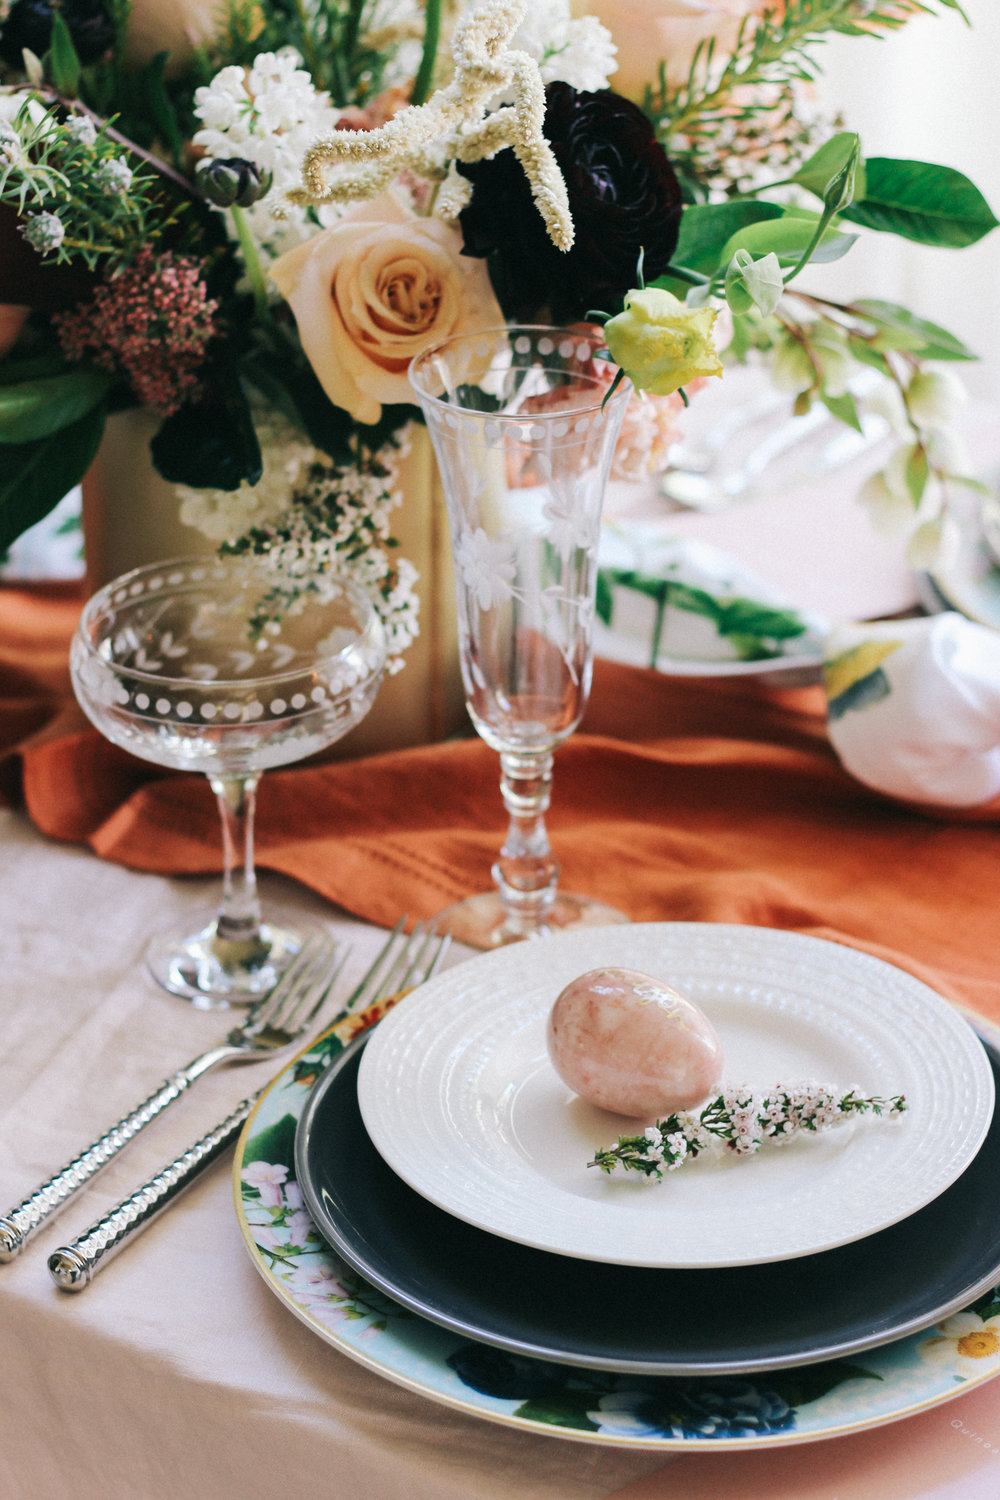 Ideas for an Easter brunch in an unexpected color palette | A Fabulous Fete